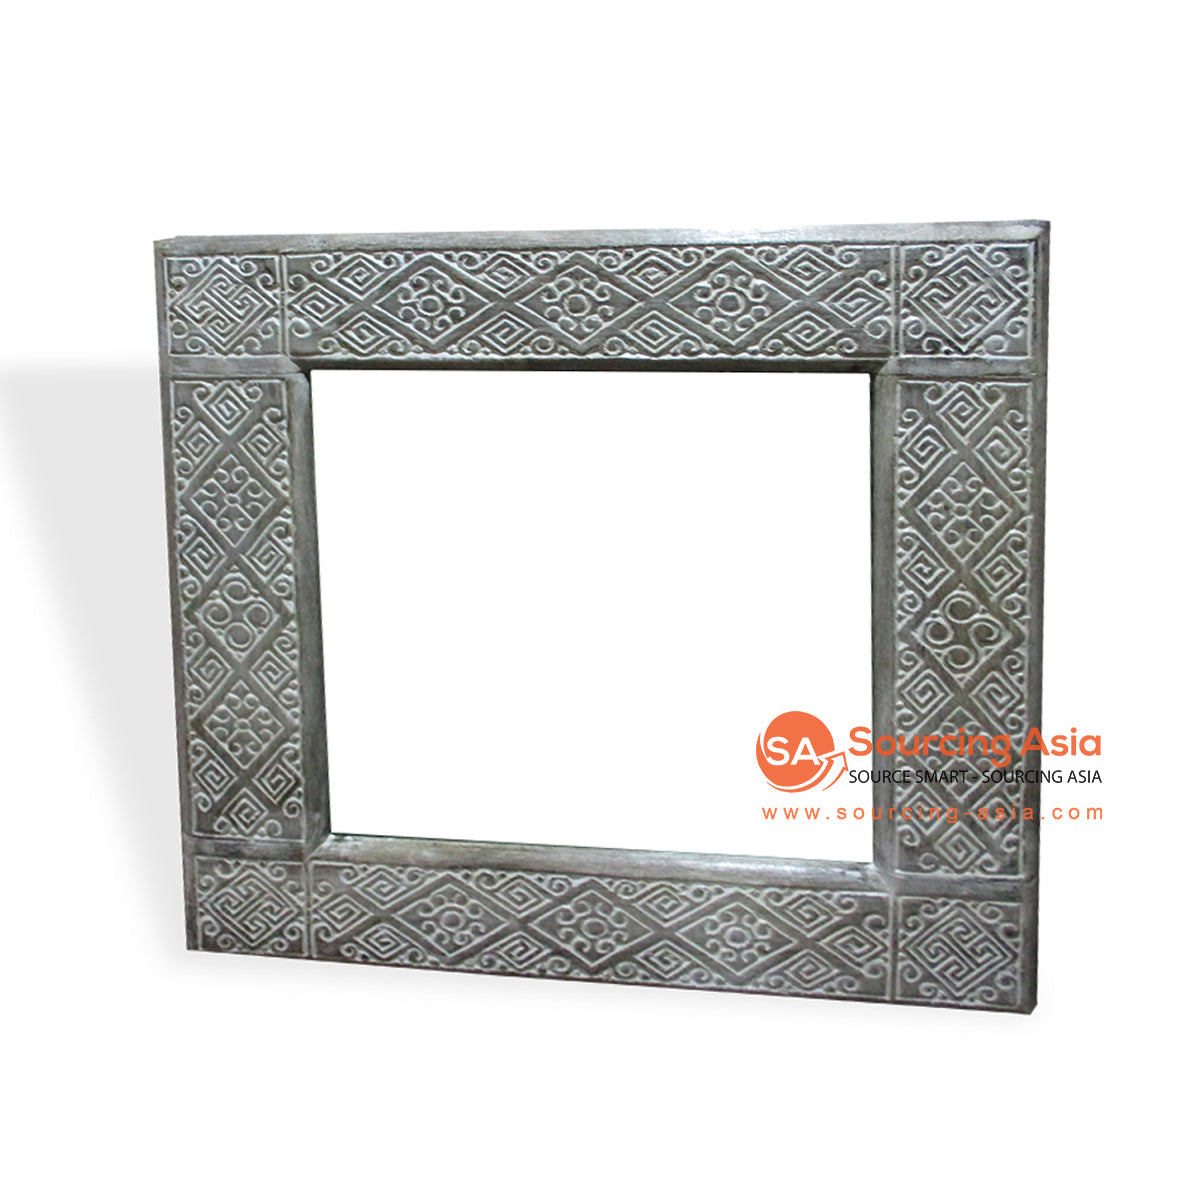 CDA002-3 WOODEN MIRROR WITH CARVING